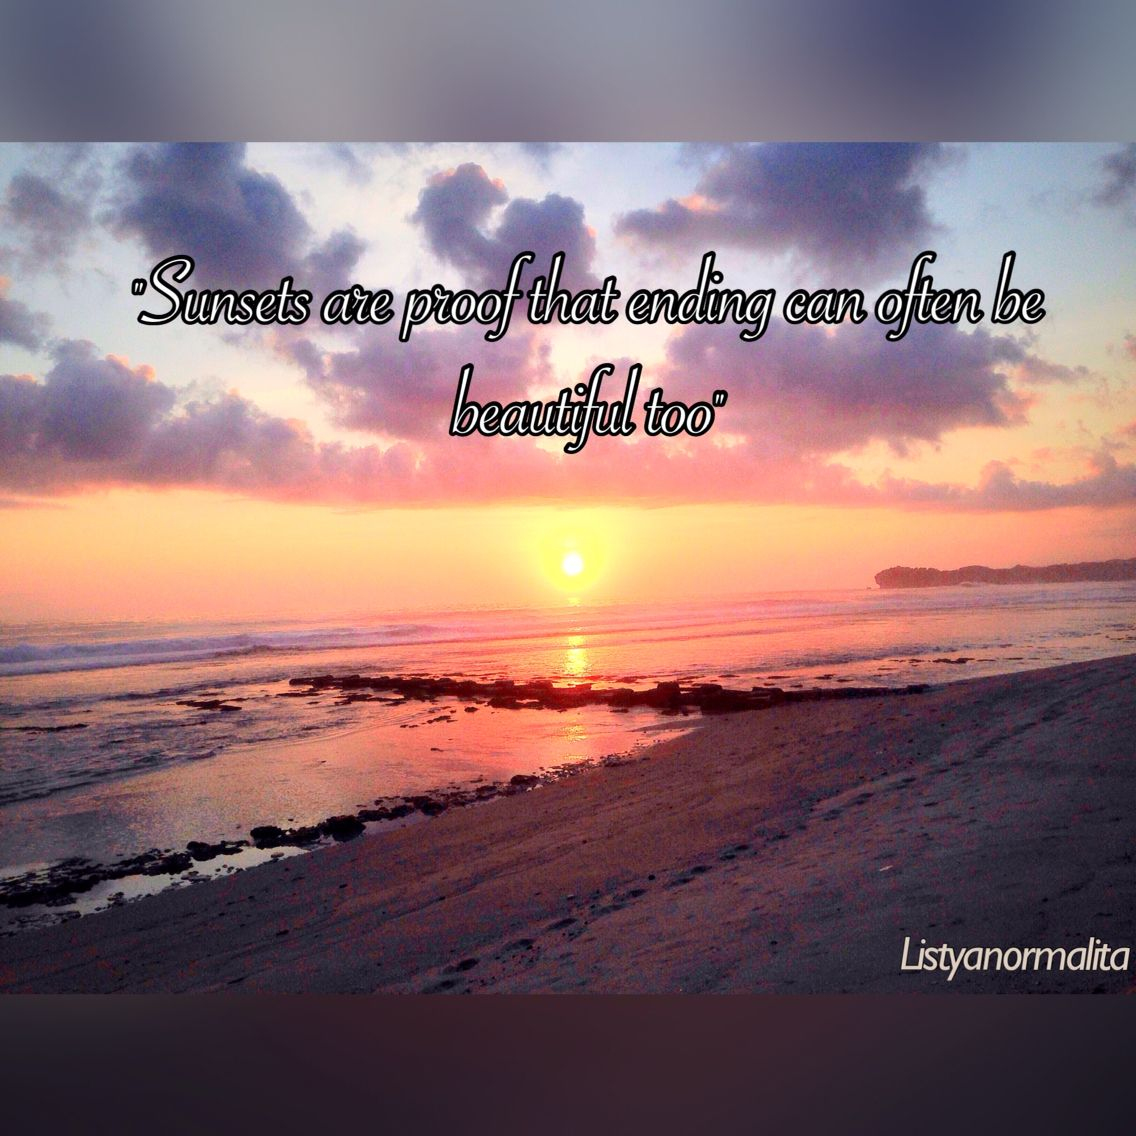 Sunsets Are Proof That Ending Can Be Beautiful Too Sunsets Quotes Beach Love Happyending Sunset Quotes Happy Endings